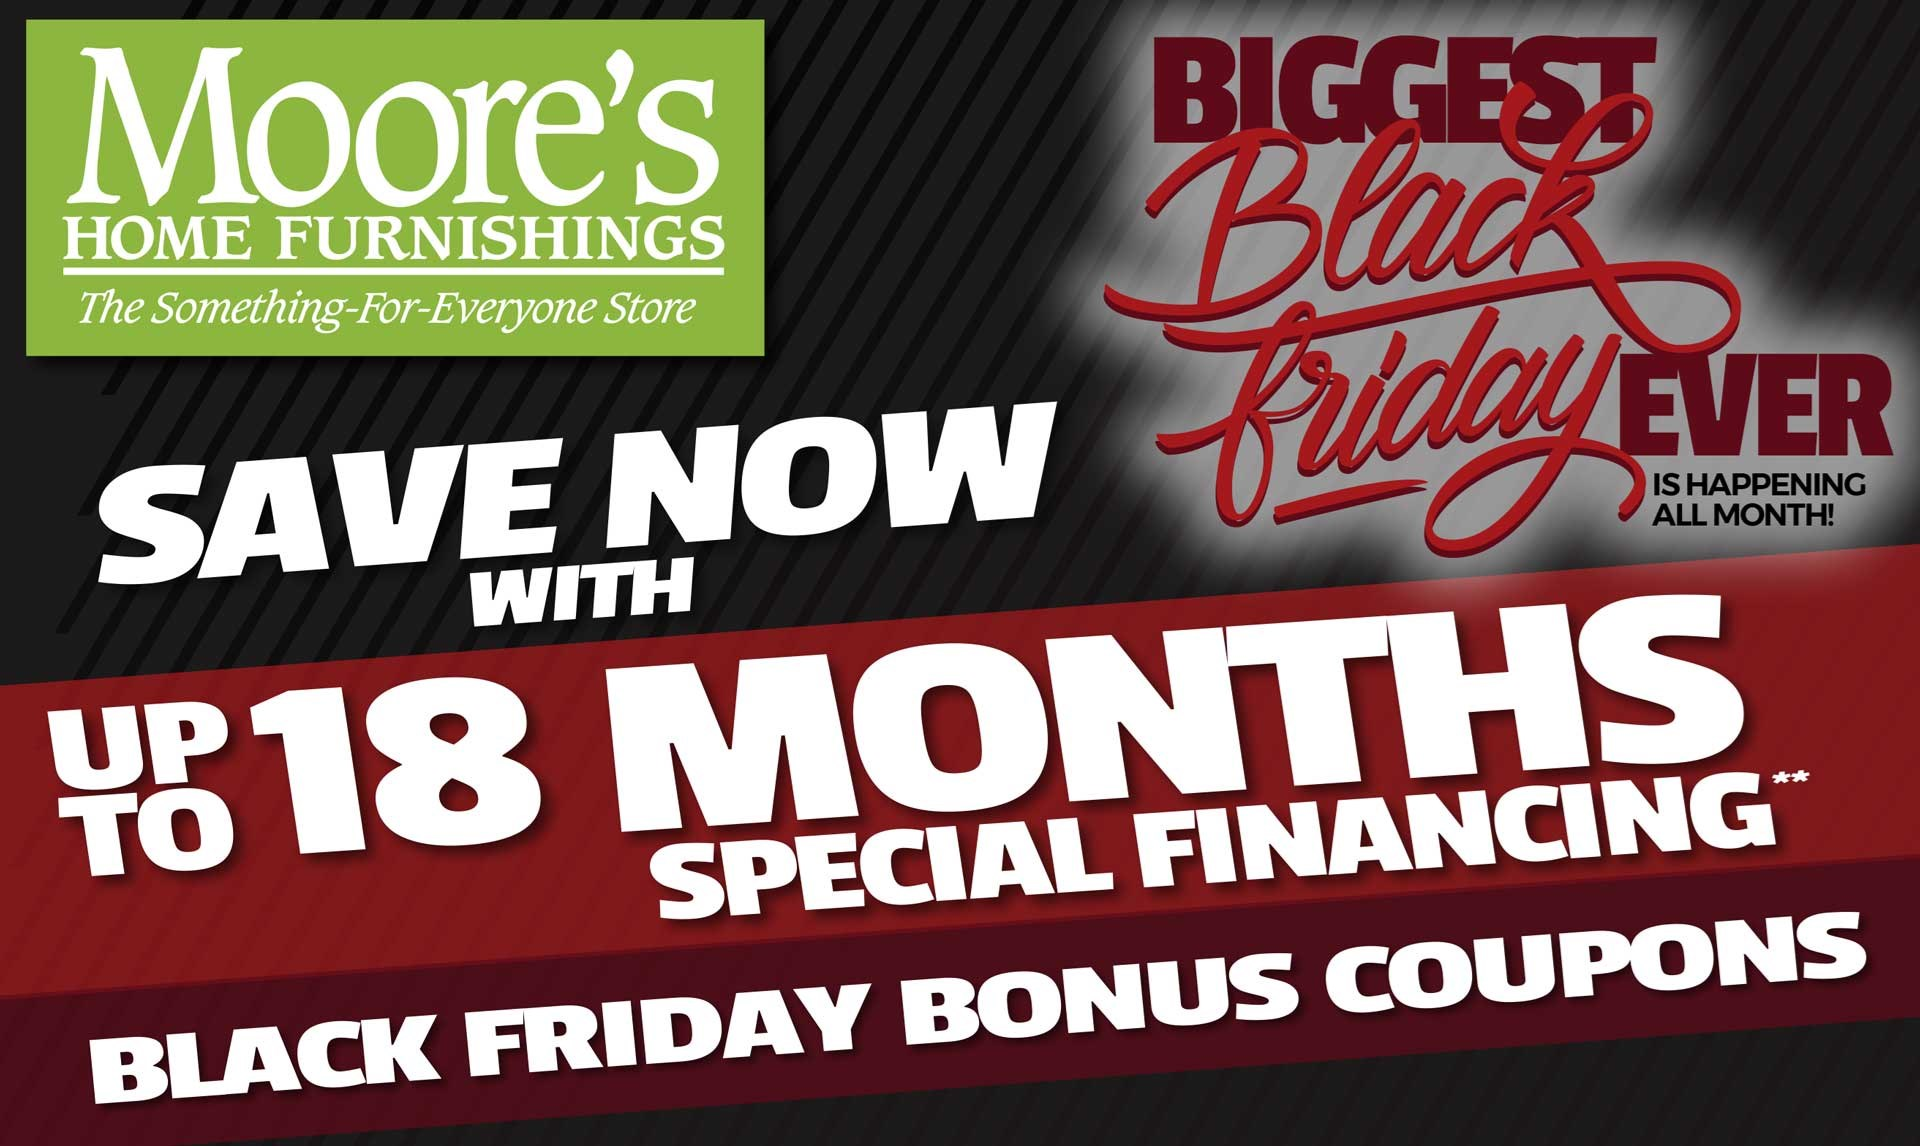 Moore's Black Friday! Save now with up to 18 months special financing**